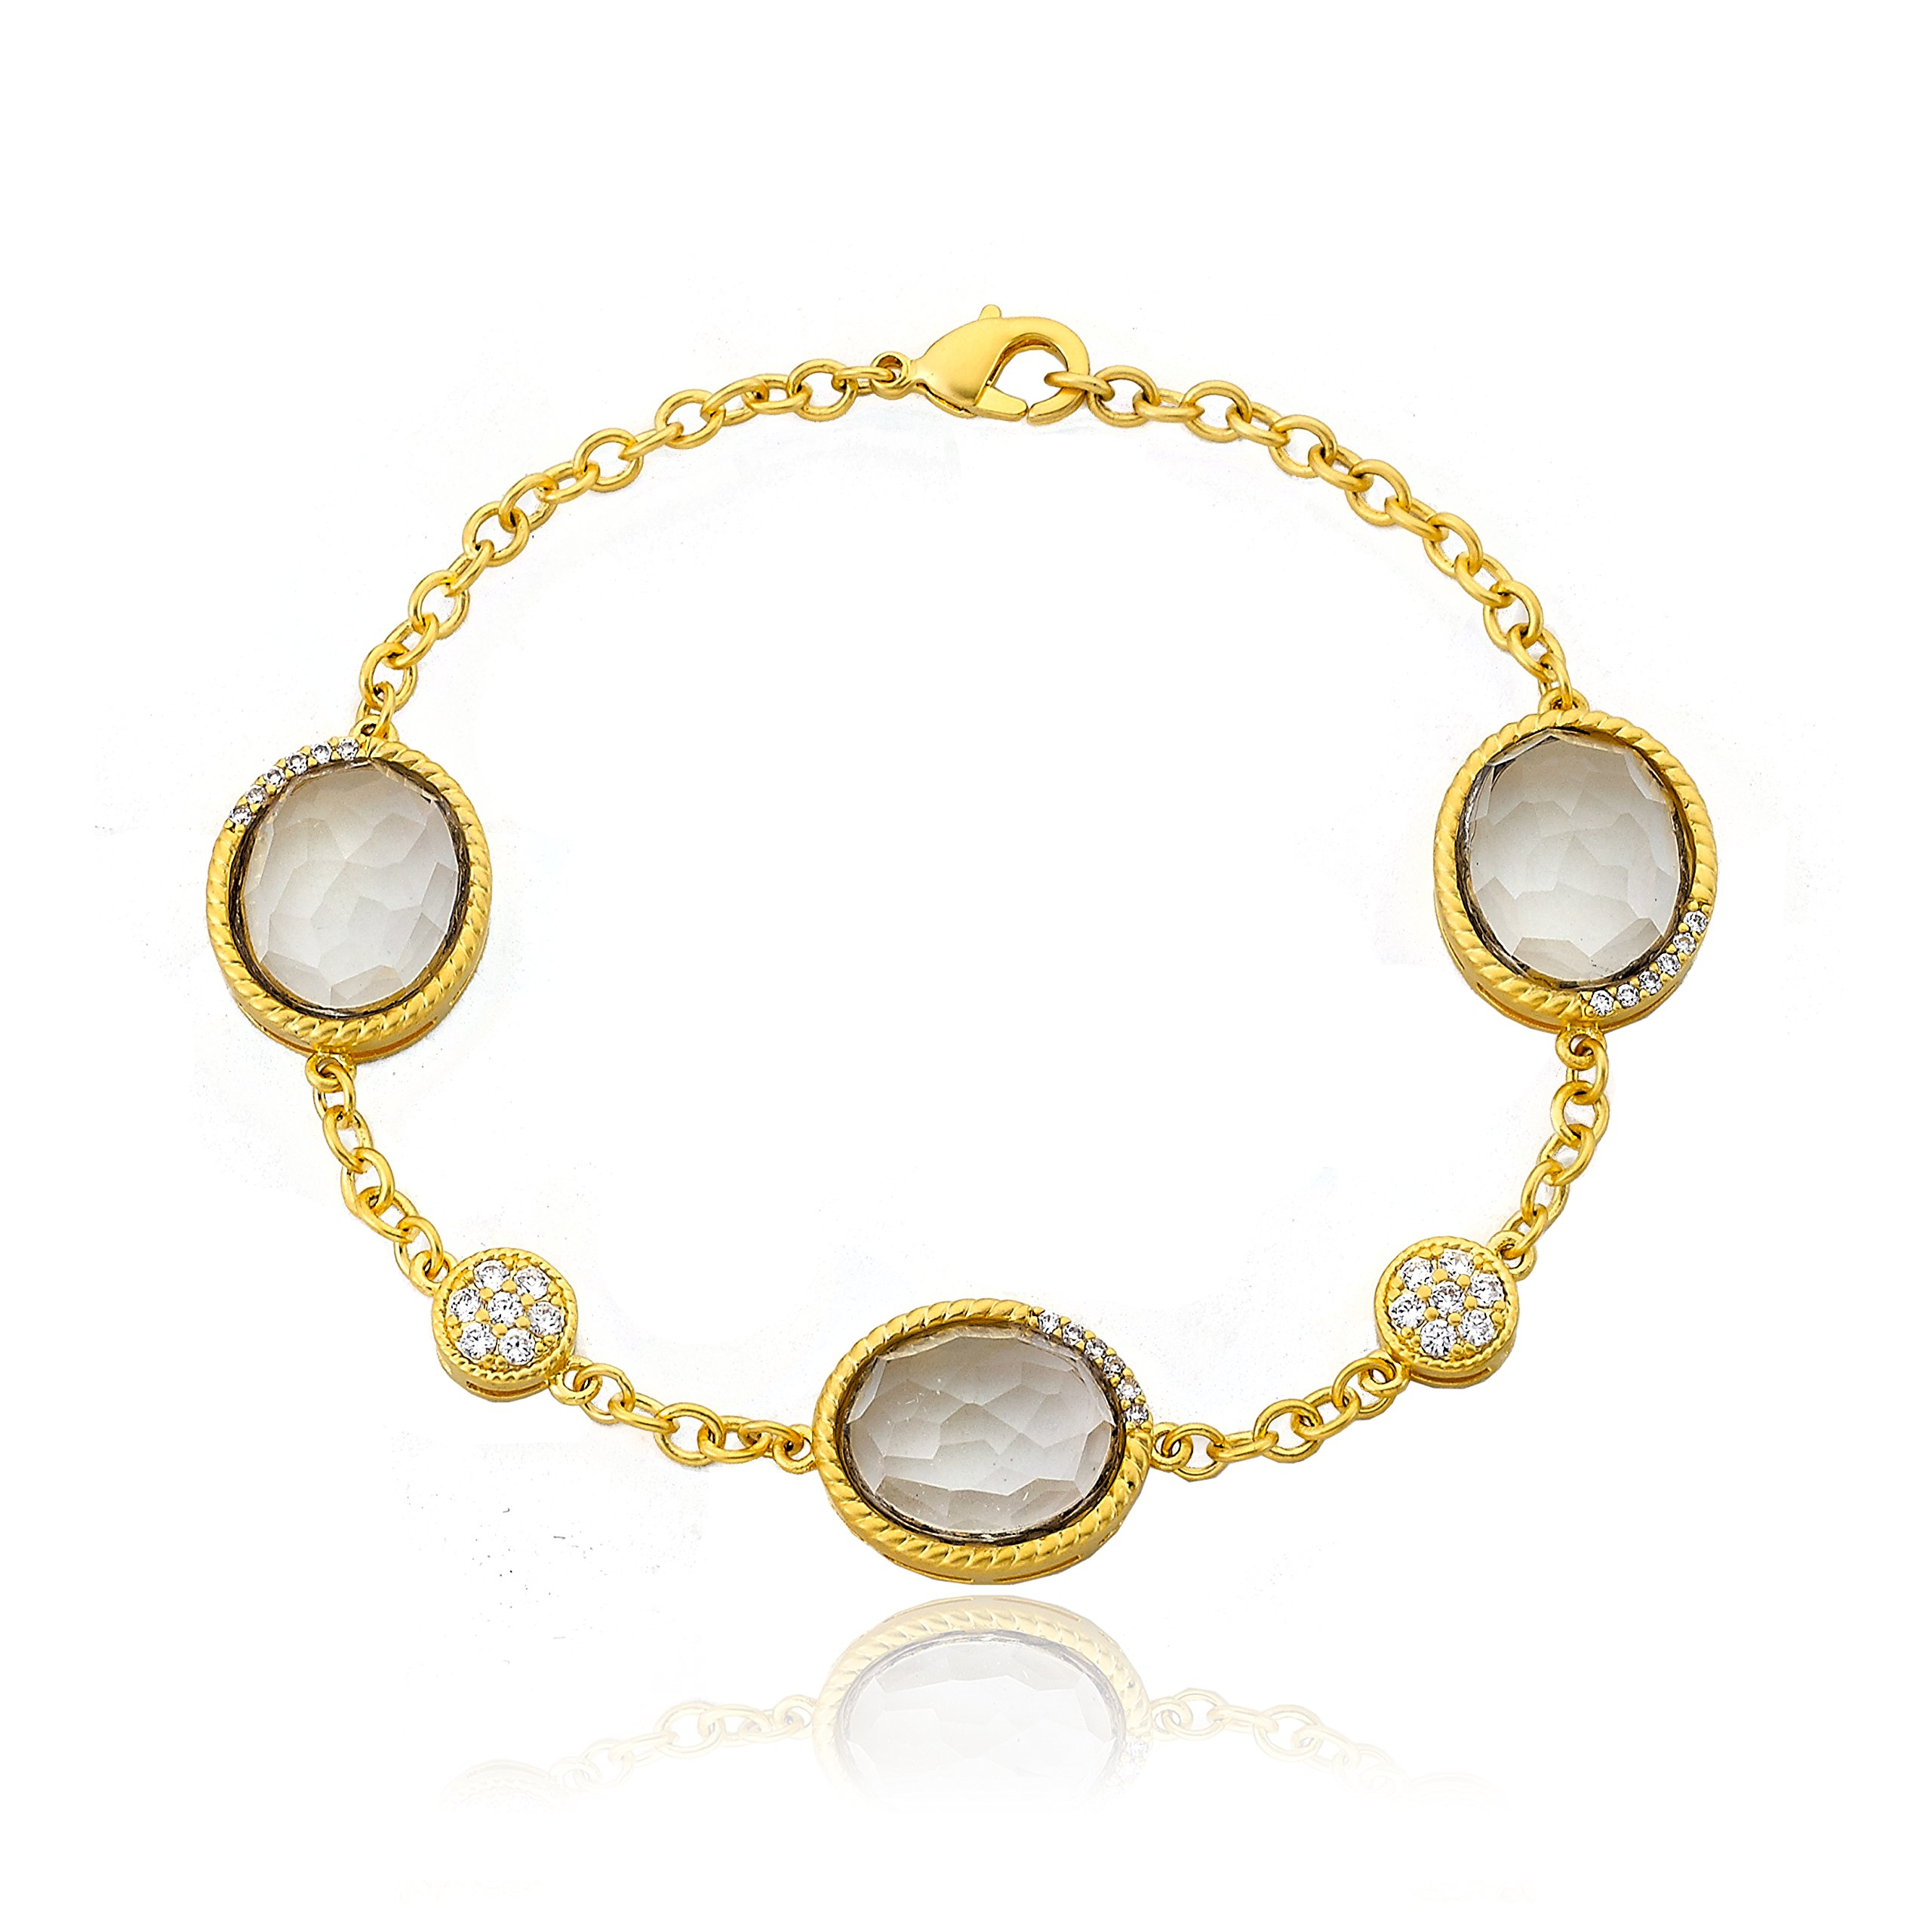 Riccova City Lights 14k Gold-Plated Cubic Zirconia & Faceted Glass Chain Bracelet/